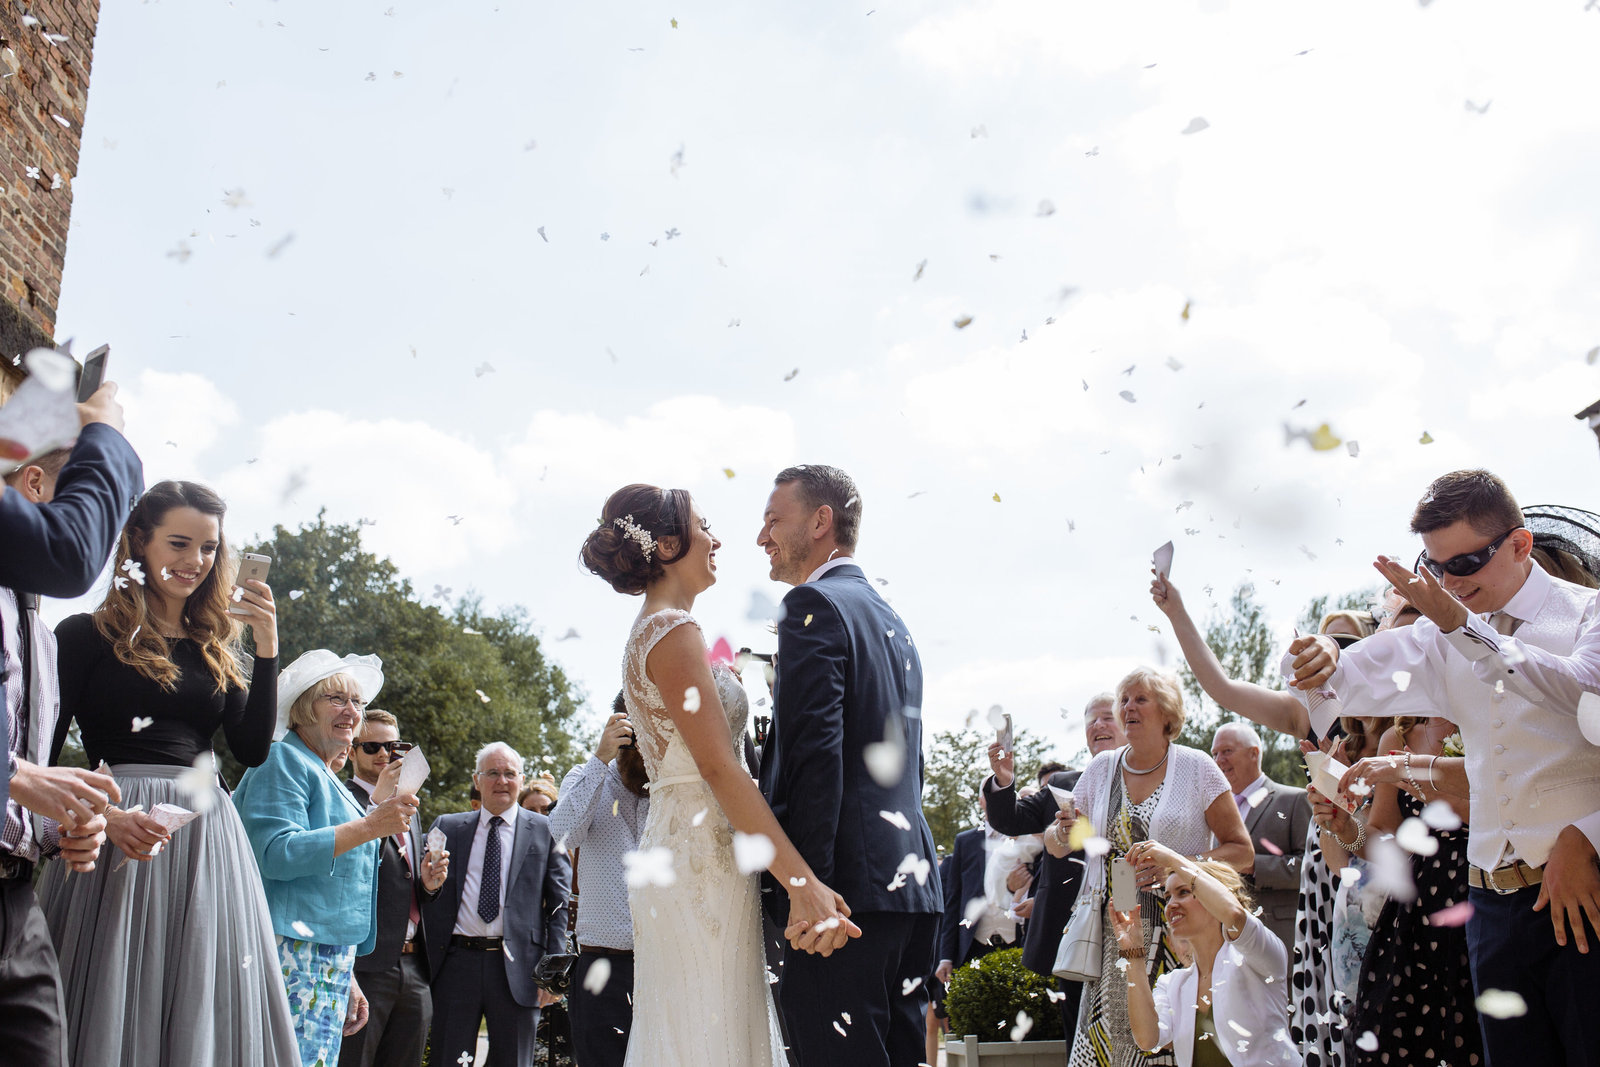 Confetti shot. West Mill Wedding Photographer, Derbyshire